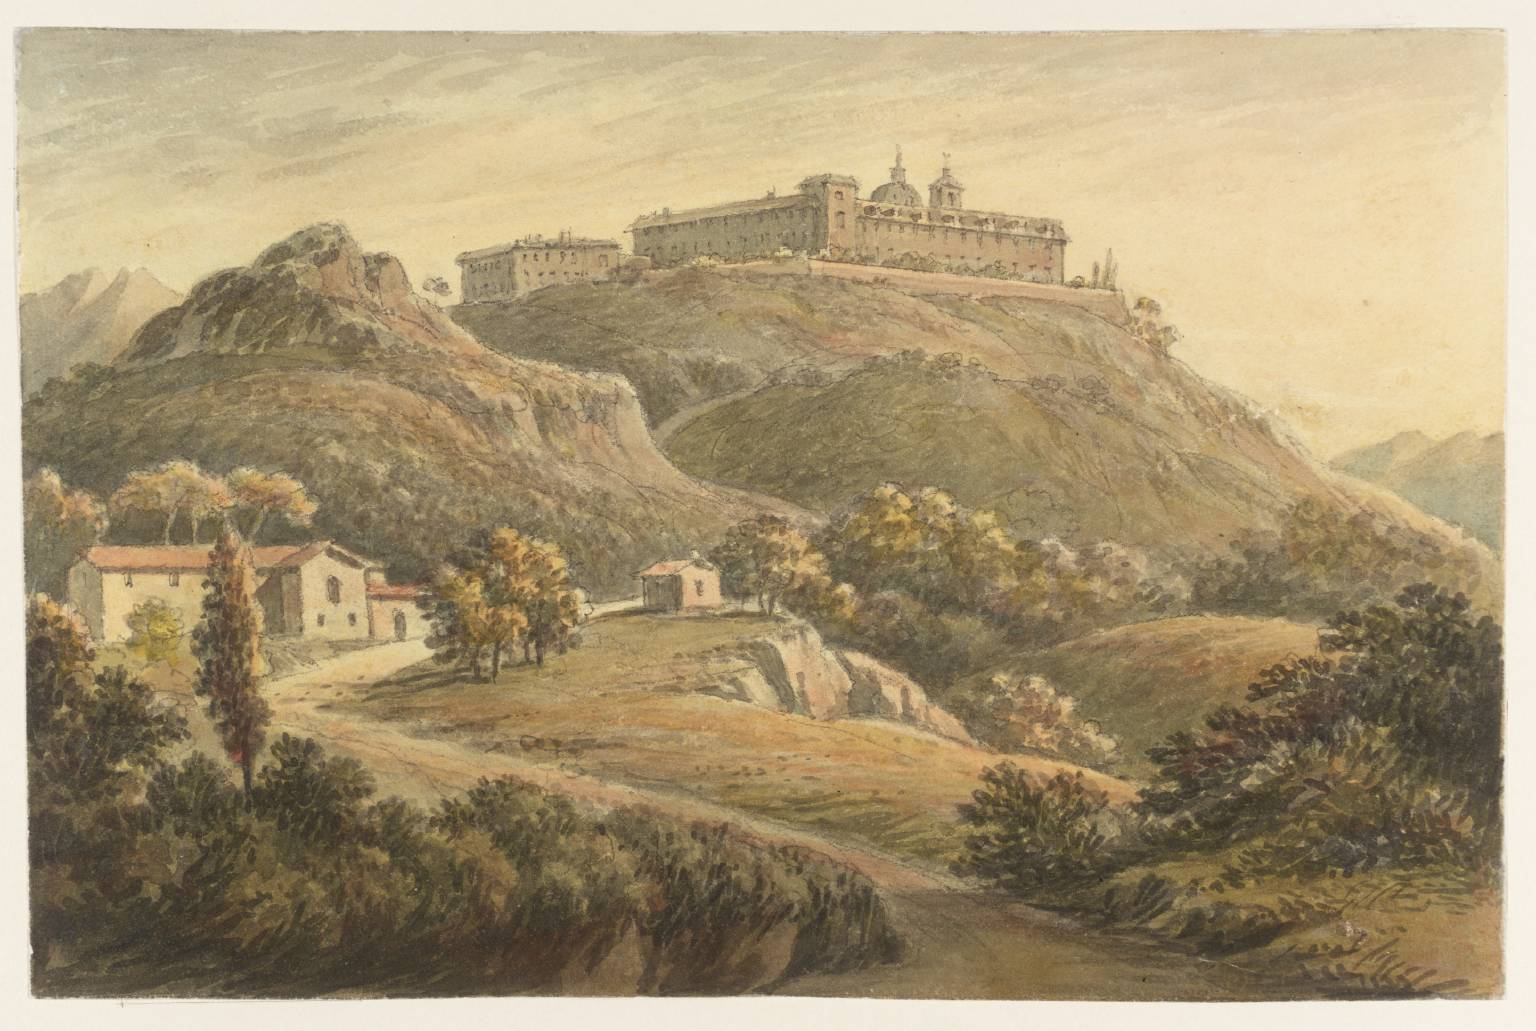 MonteCassino-Painting-John-Warwick-Smith-1749–1831